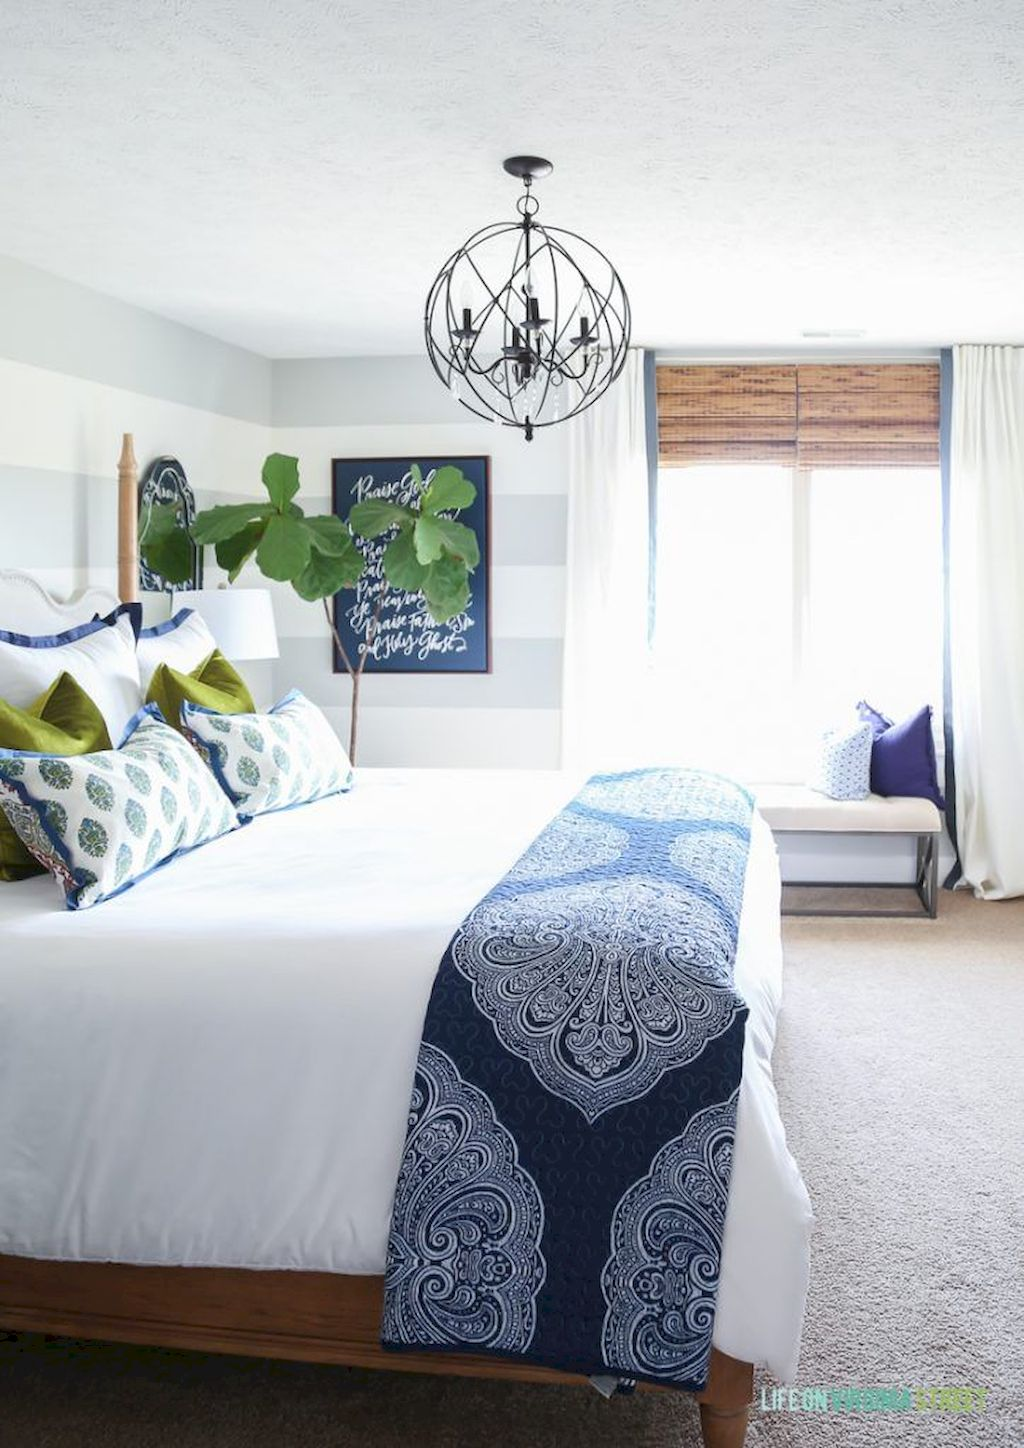 Affordable Bedroom Design With Comfortable Beds and Furniture Part 9